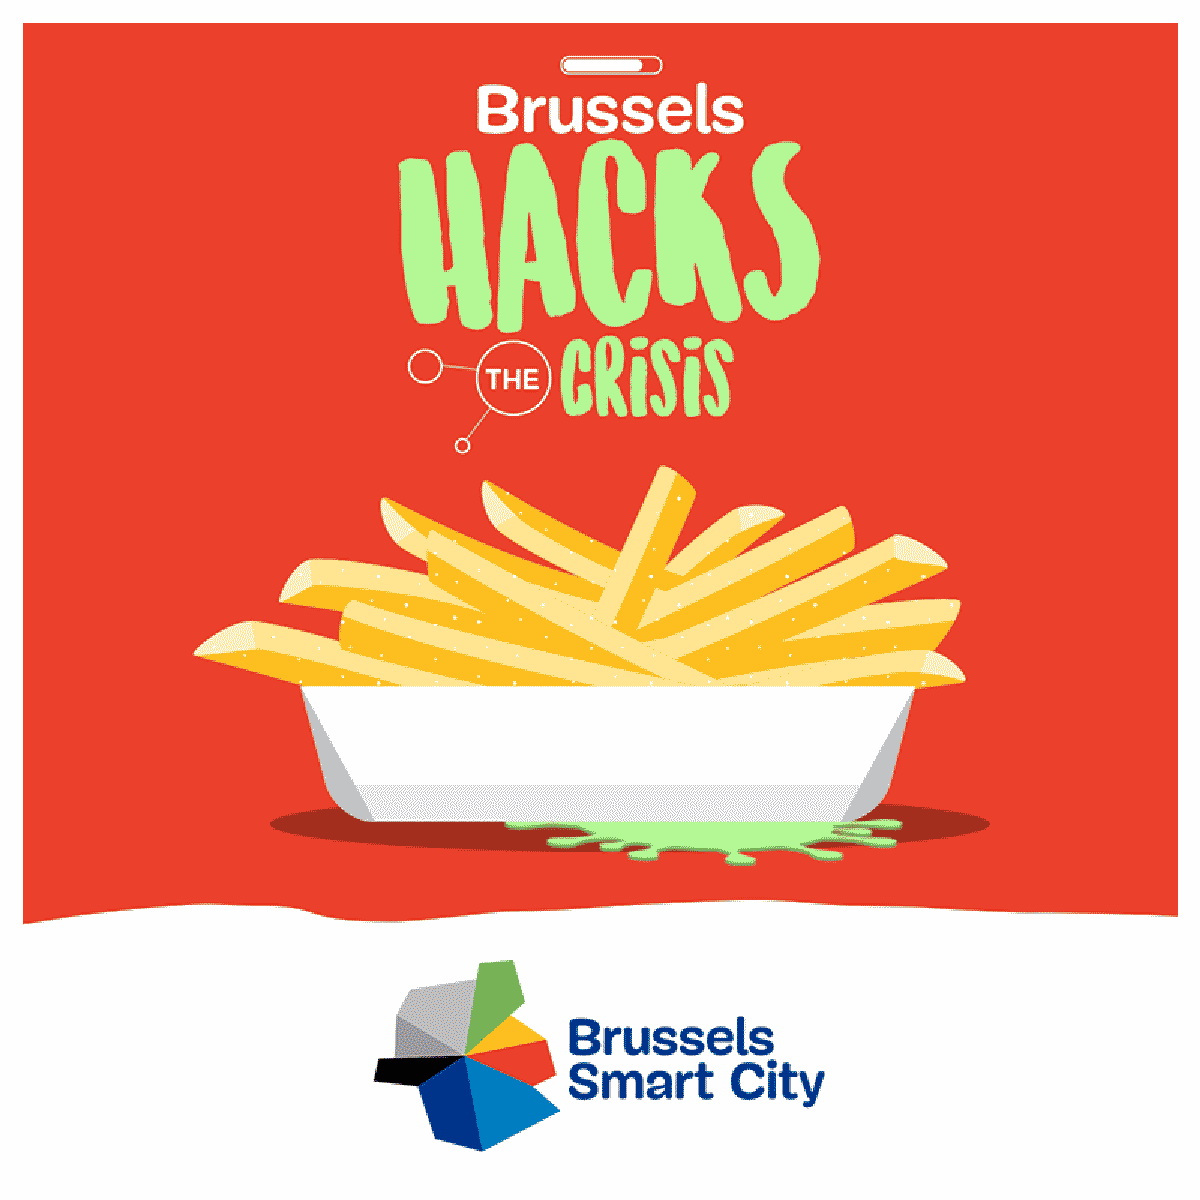 Brussels Hacks the Crisis